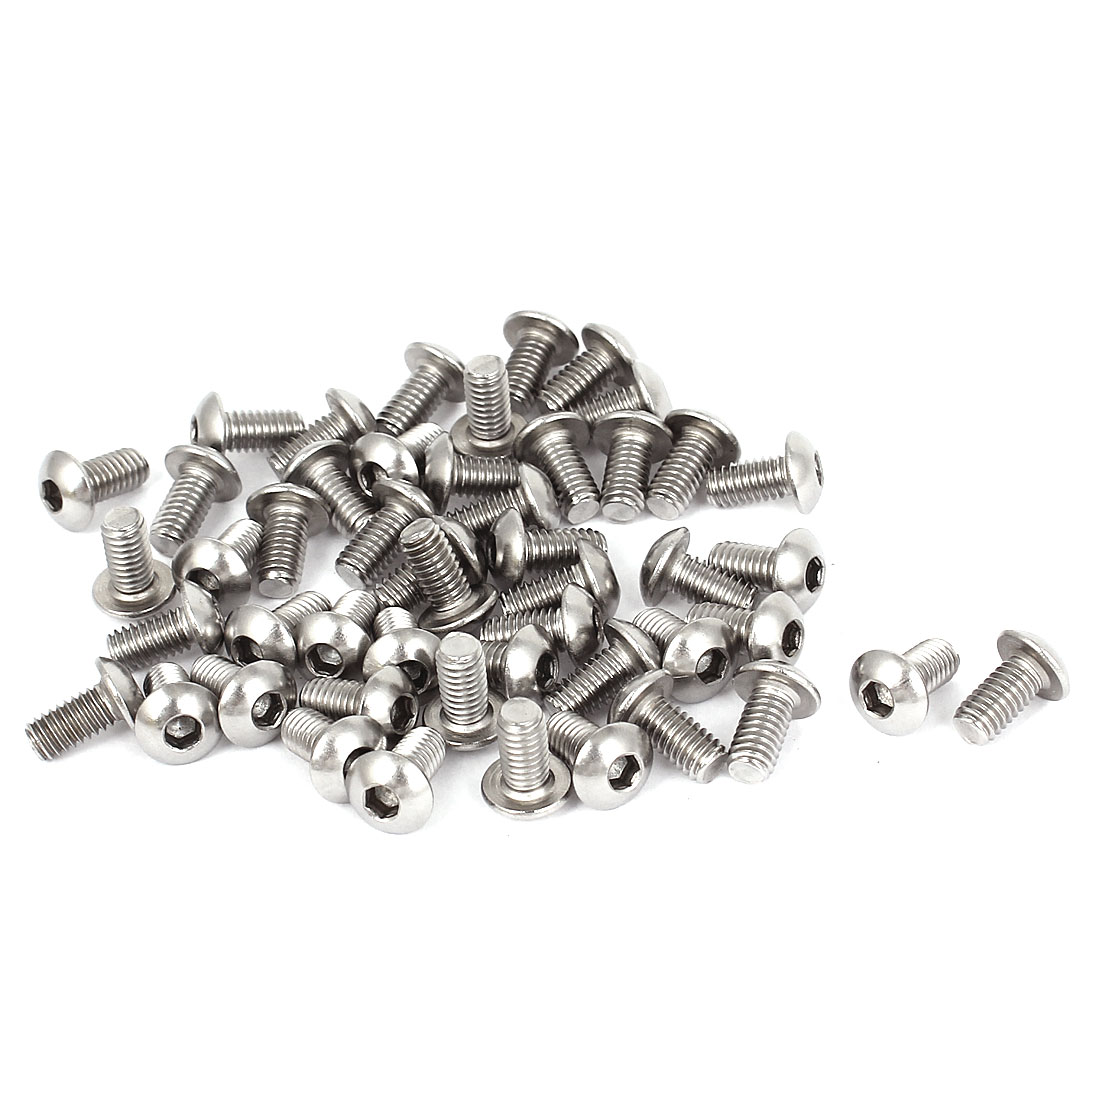 50pcs M4x0.7mmx8mm Stainless Steel Hex Socket Button Head Screws Bolts 10mm Long